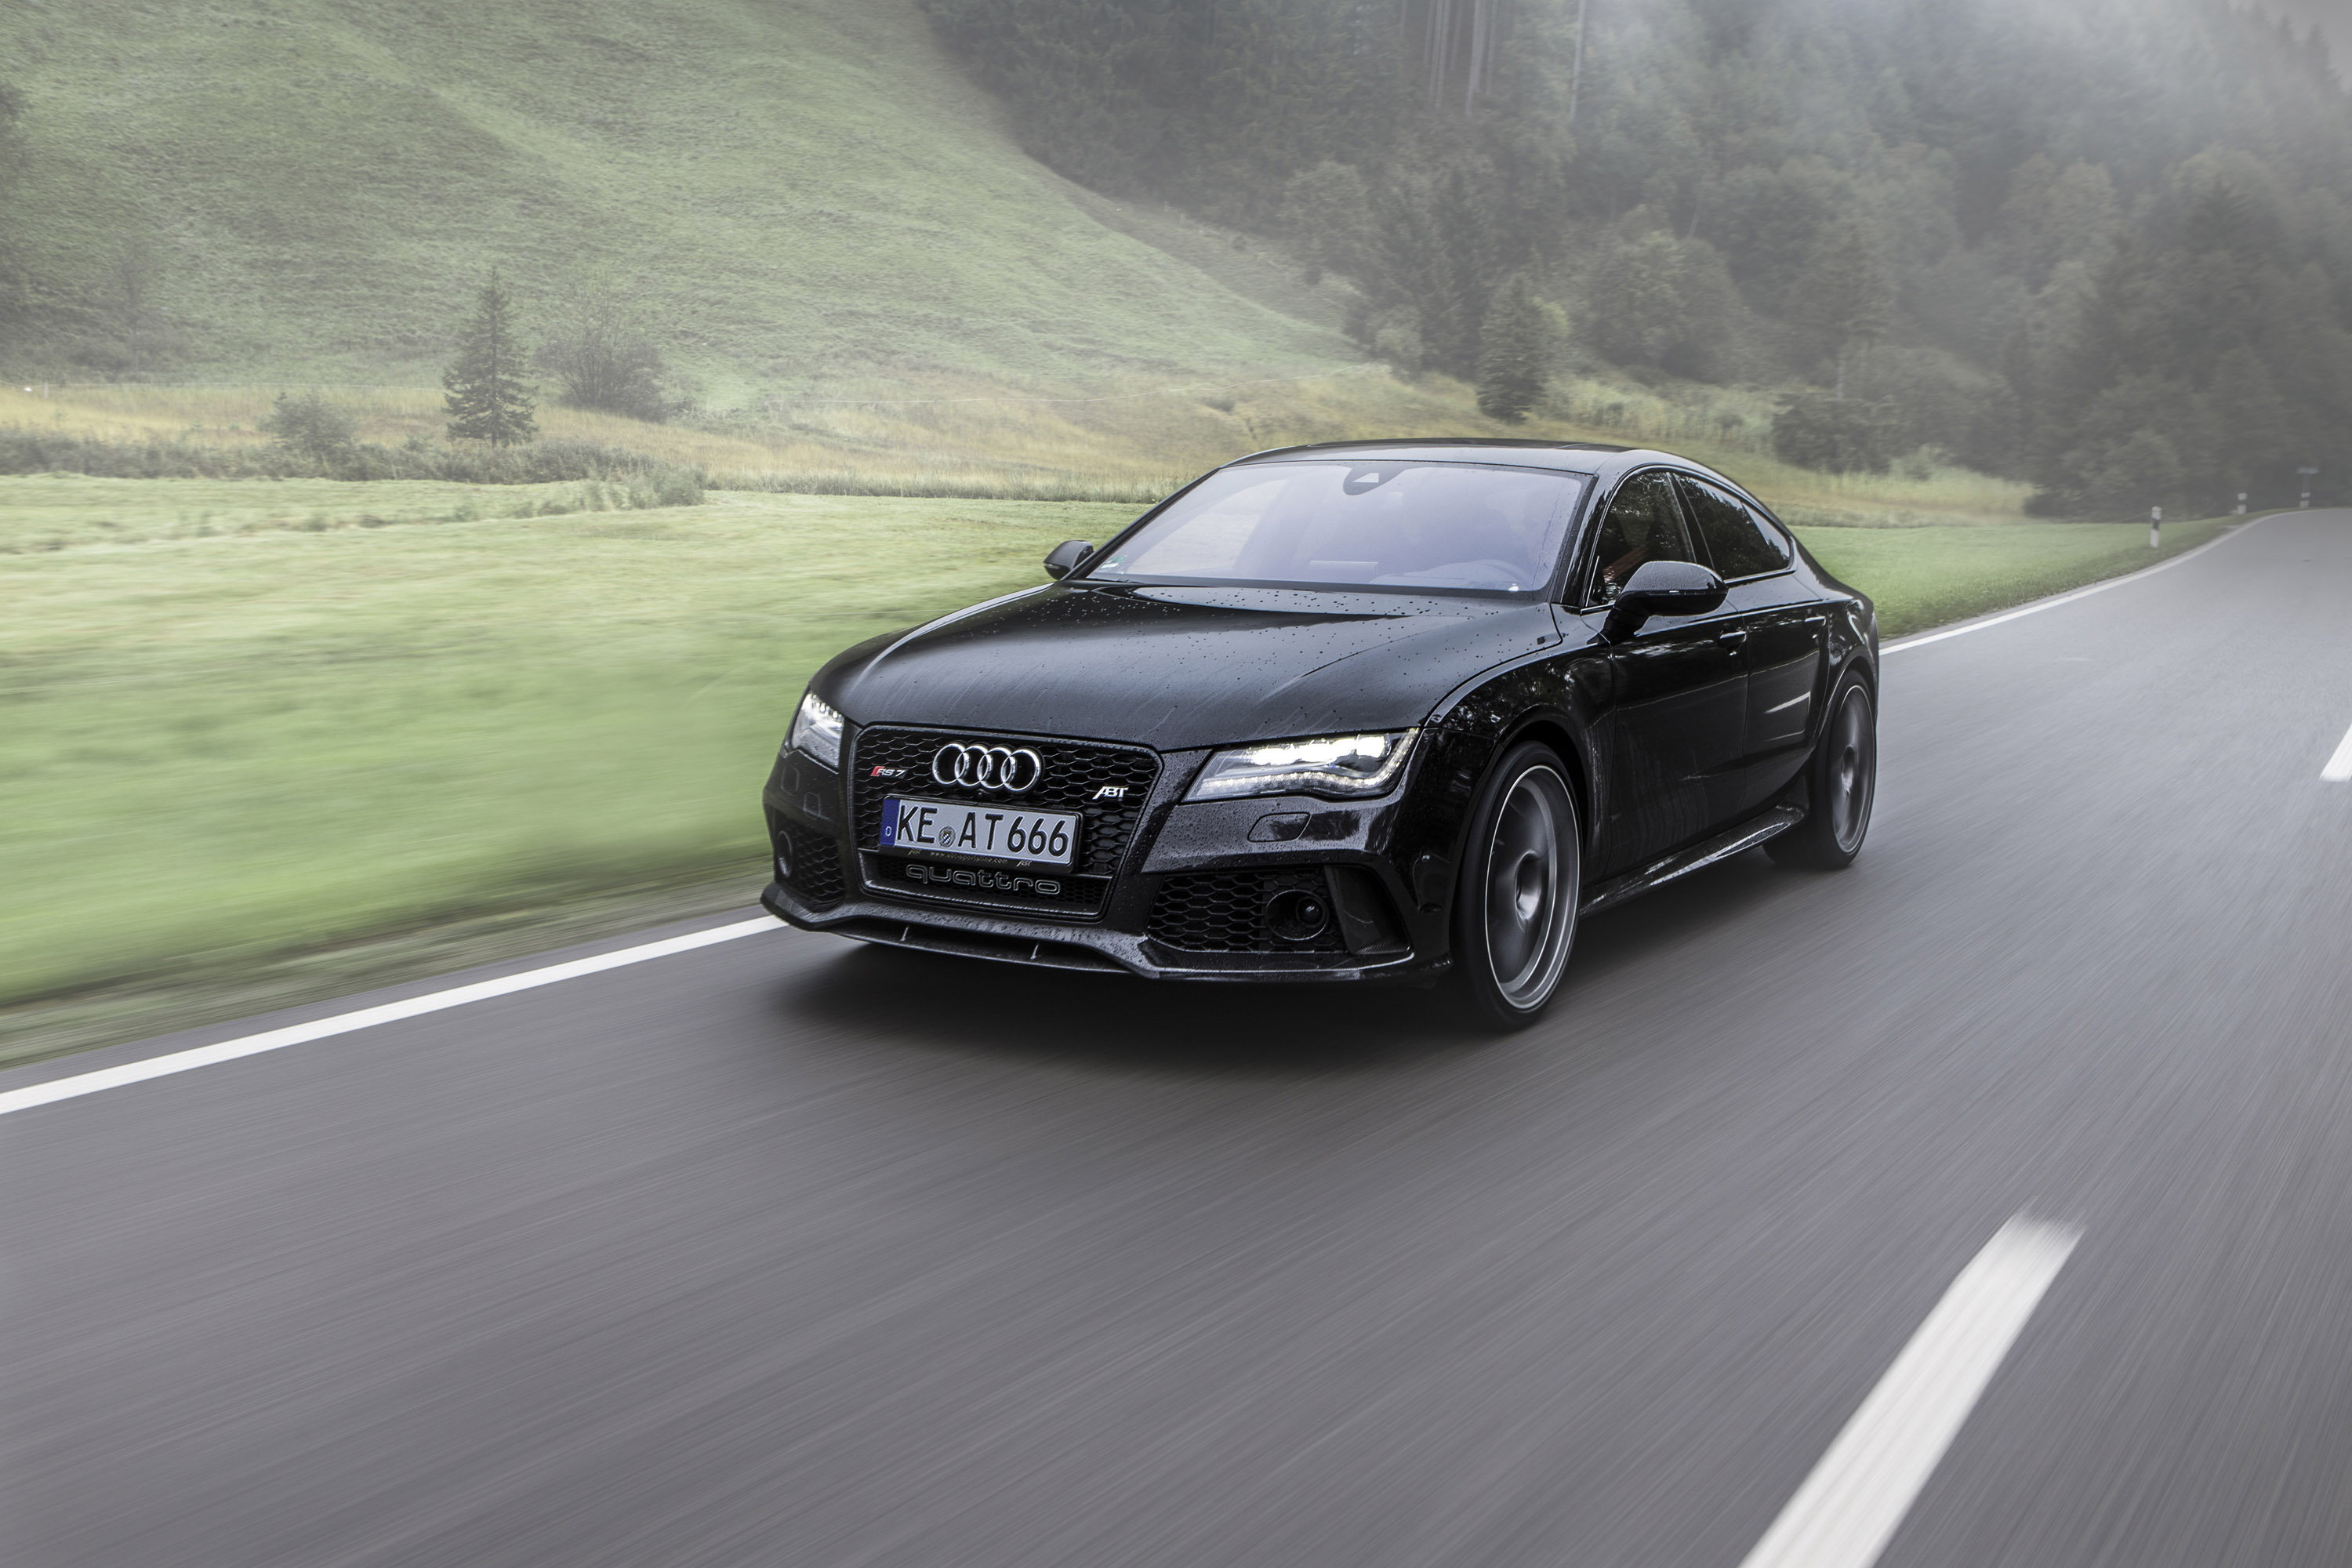 abt audi rs7 700hp and 880nm. Black Bedroom Furniture Sets. Home Design Ideas